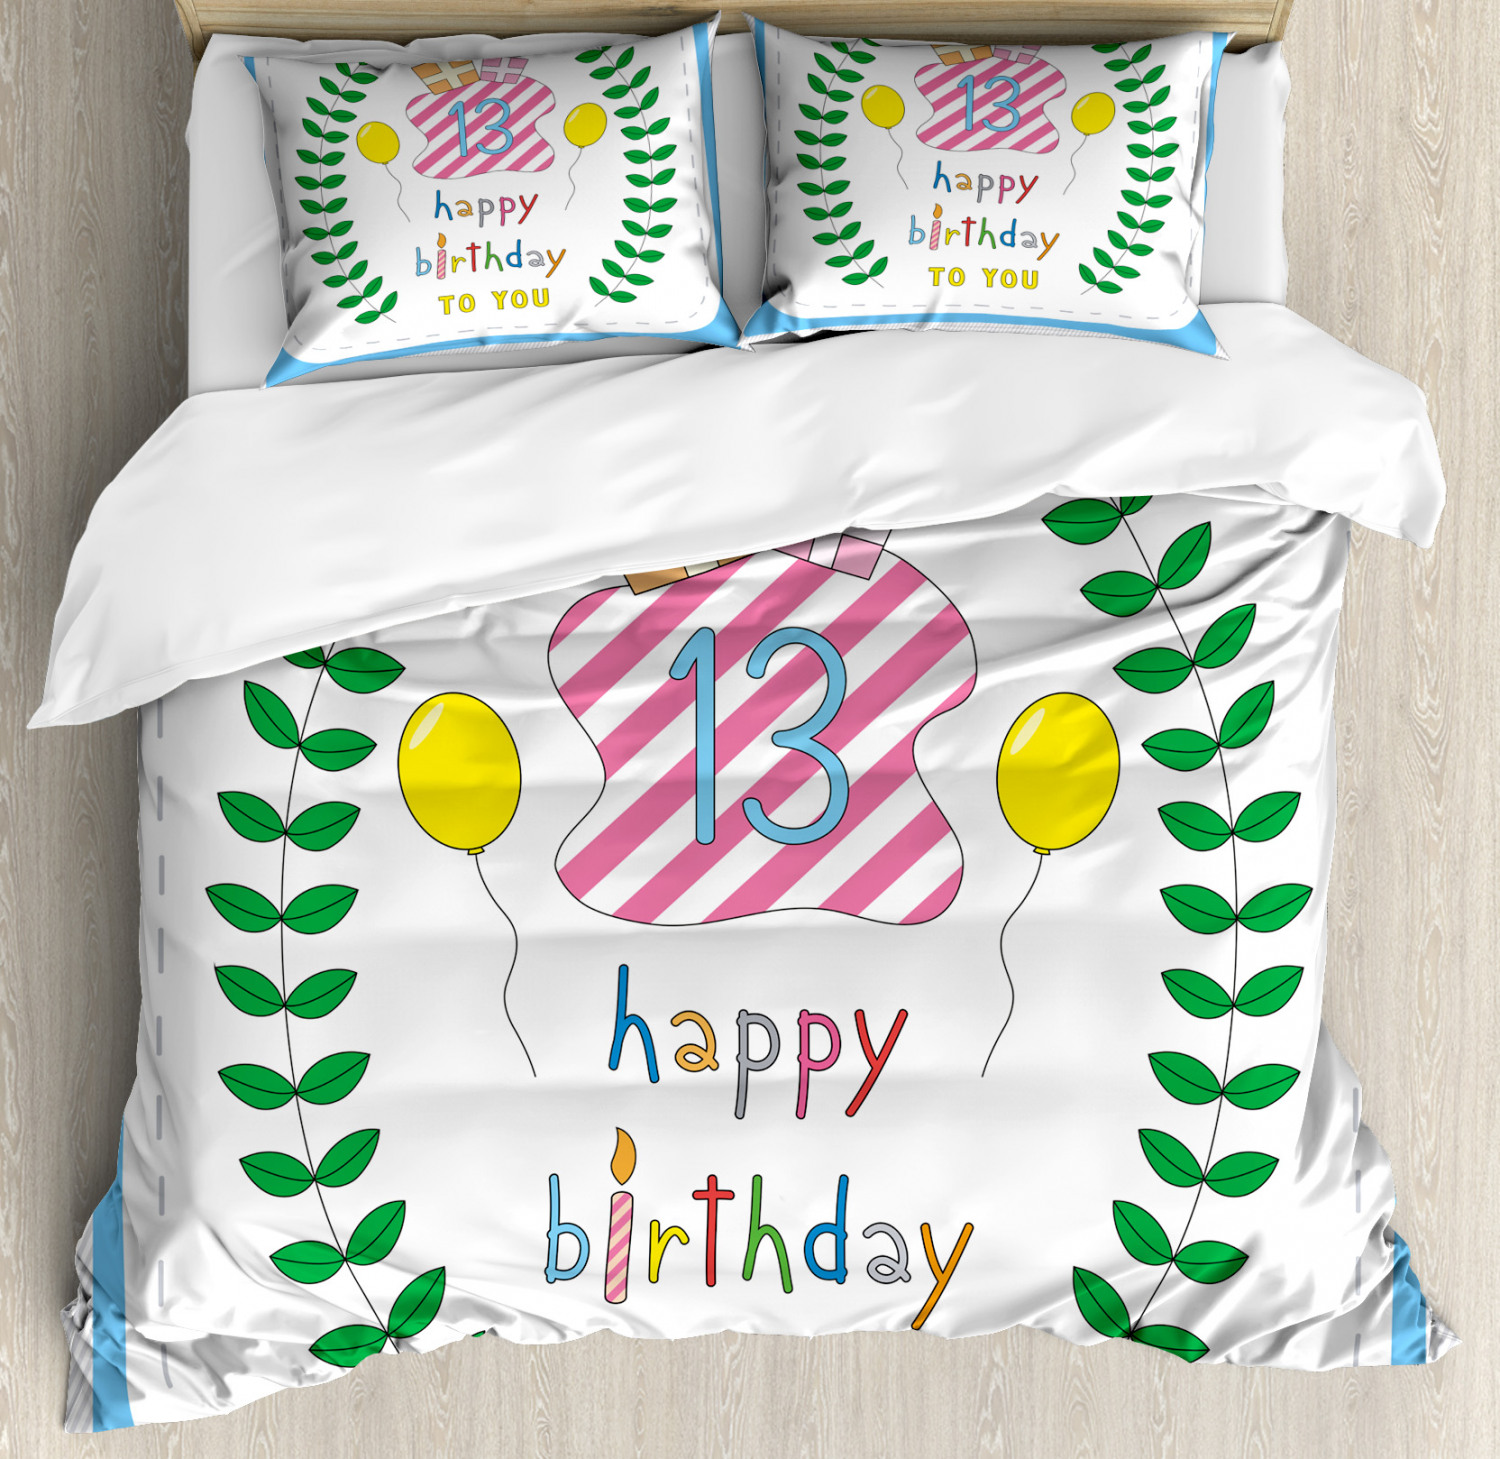 colorful Duvet Cover Set with Pillow Shams 13th Birthday Gifts Print